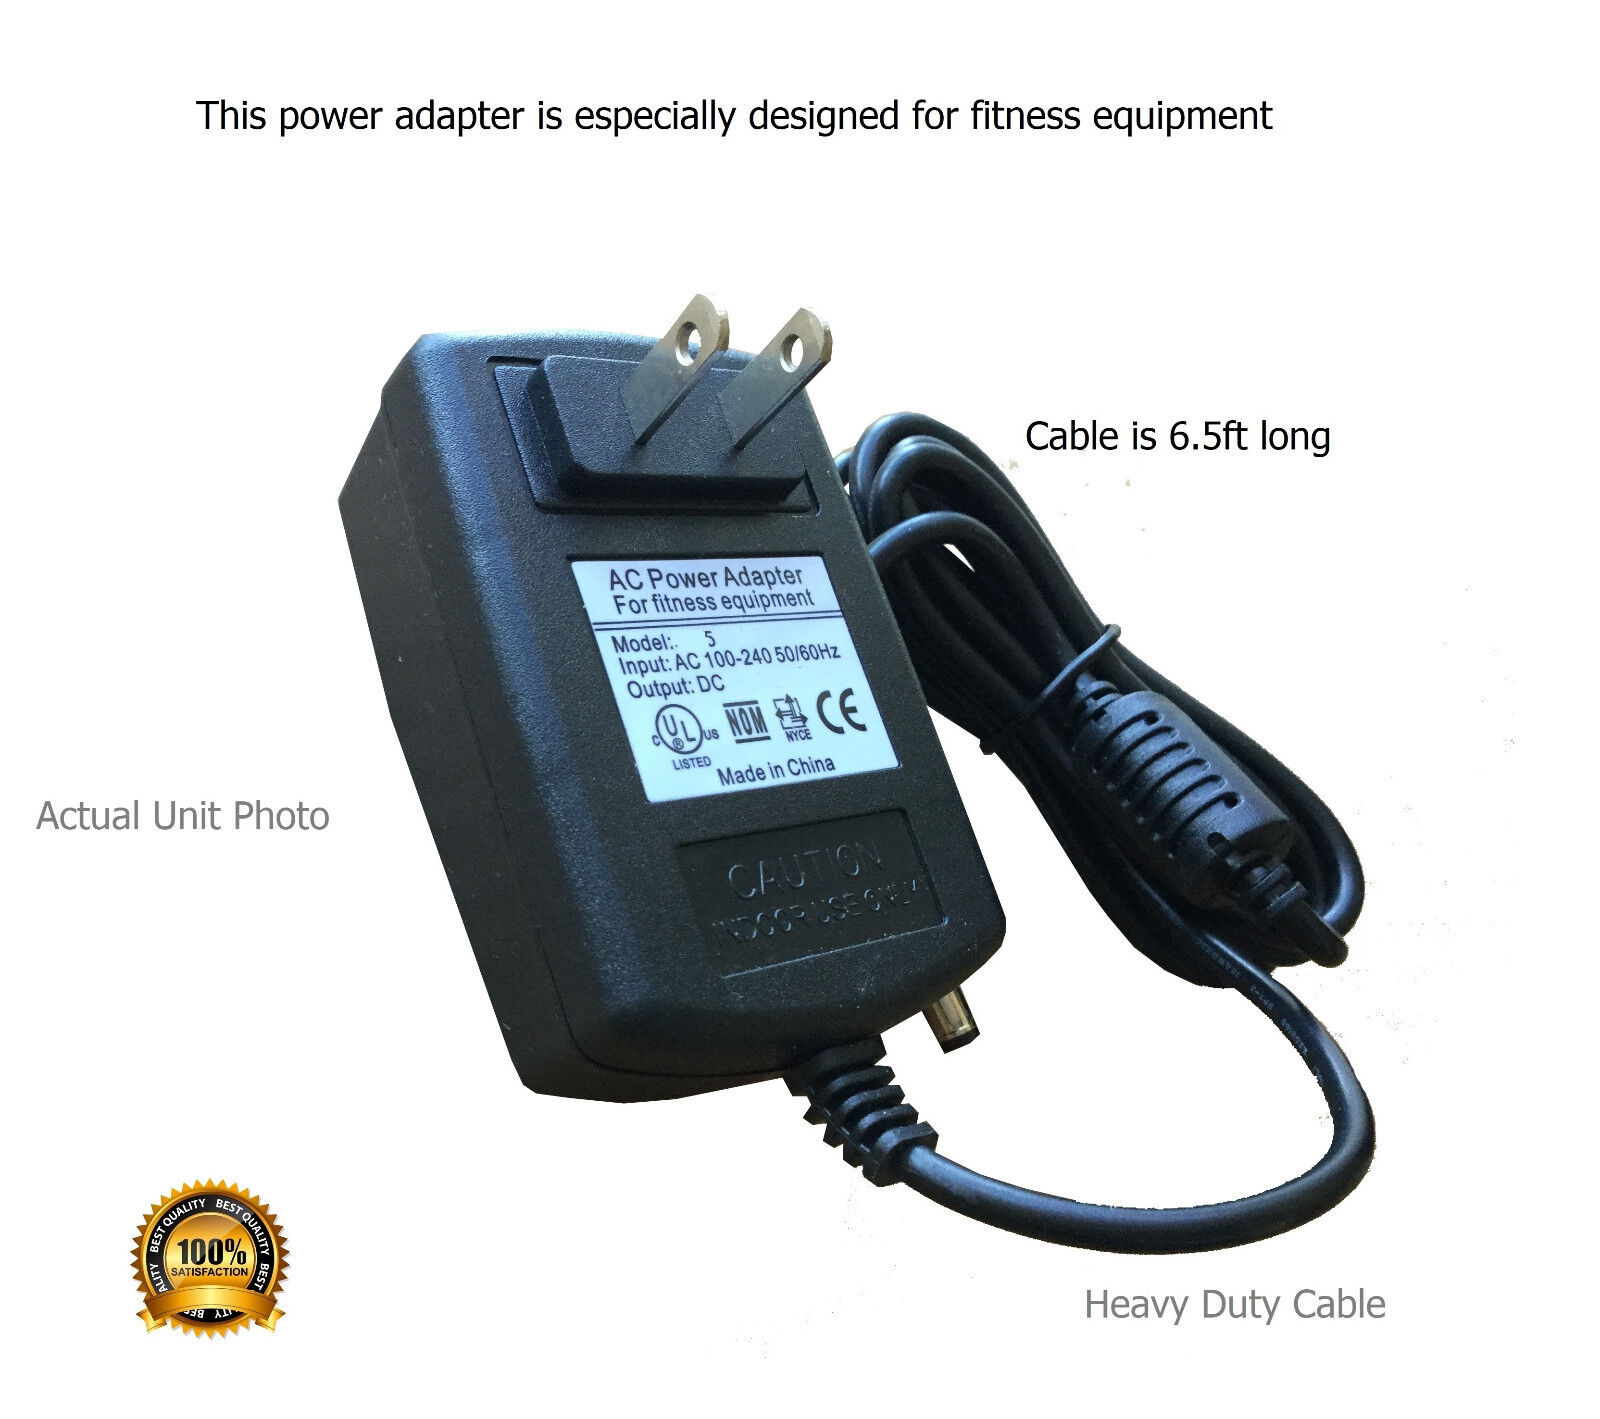 AC Power Supply Adapter for AFG Fitness 3.0AE Elliptical EP186 3.0 AE, 2008-2009